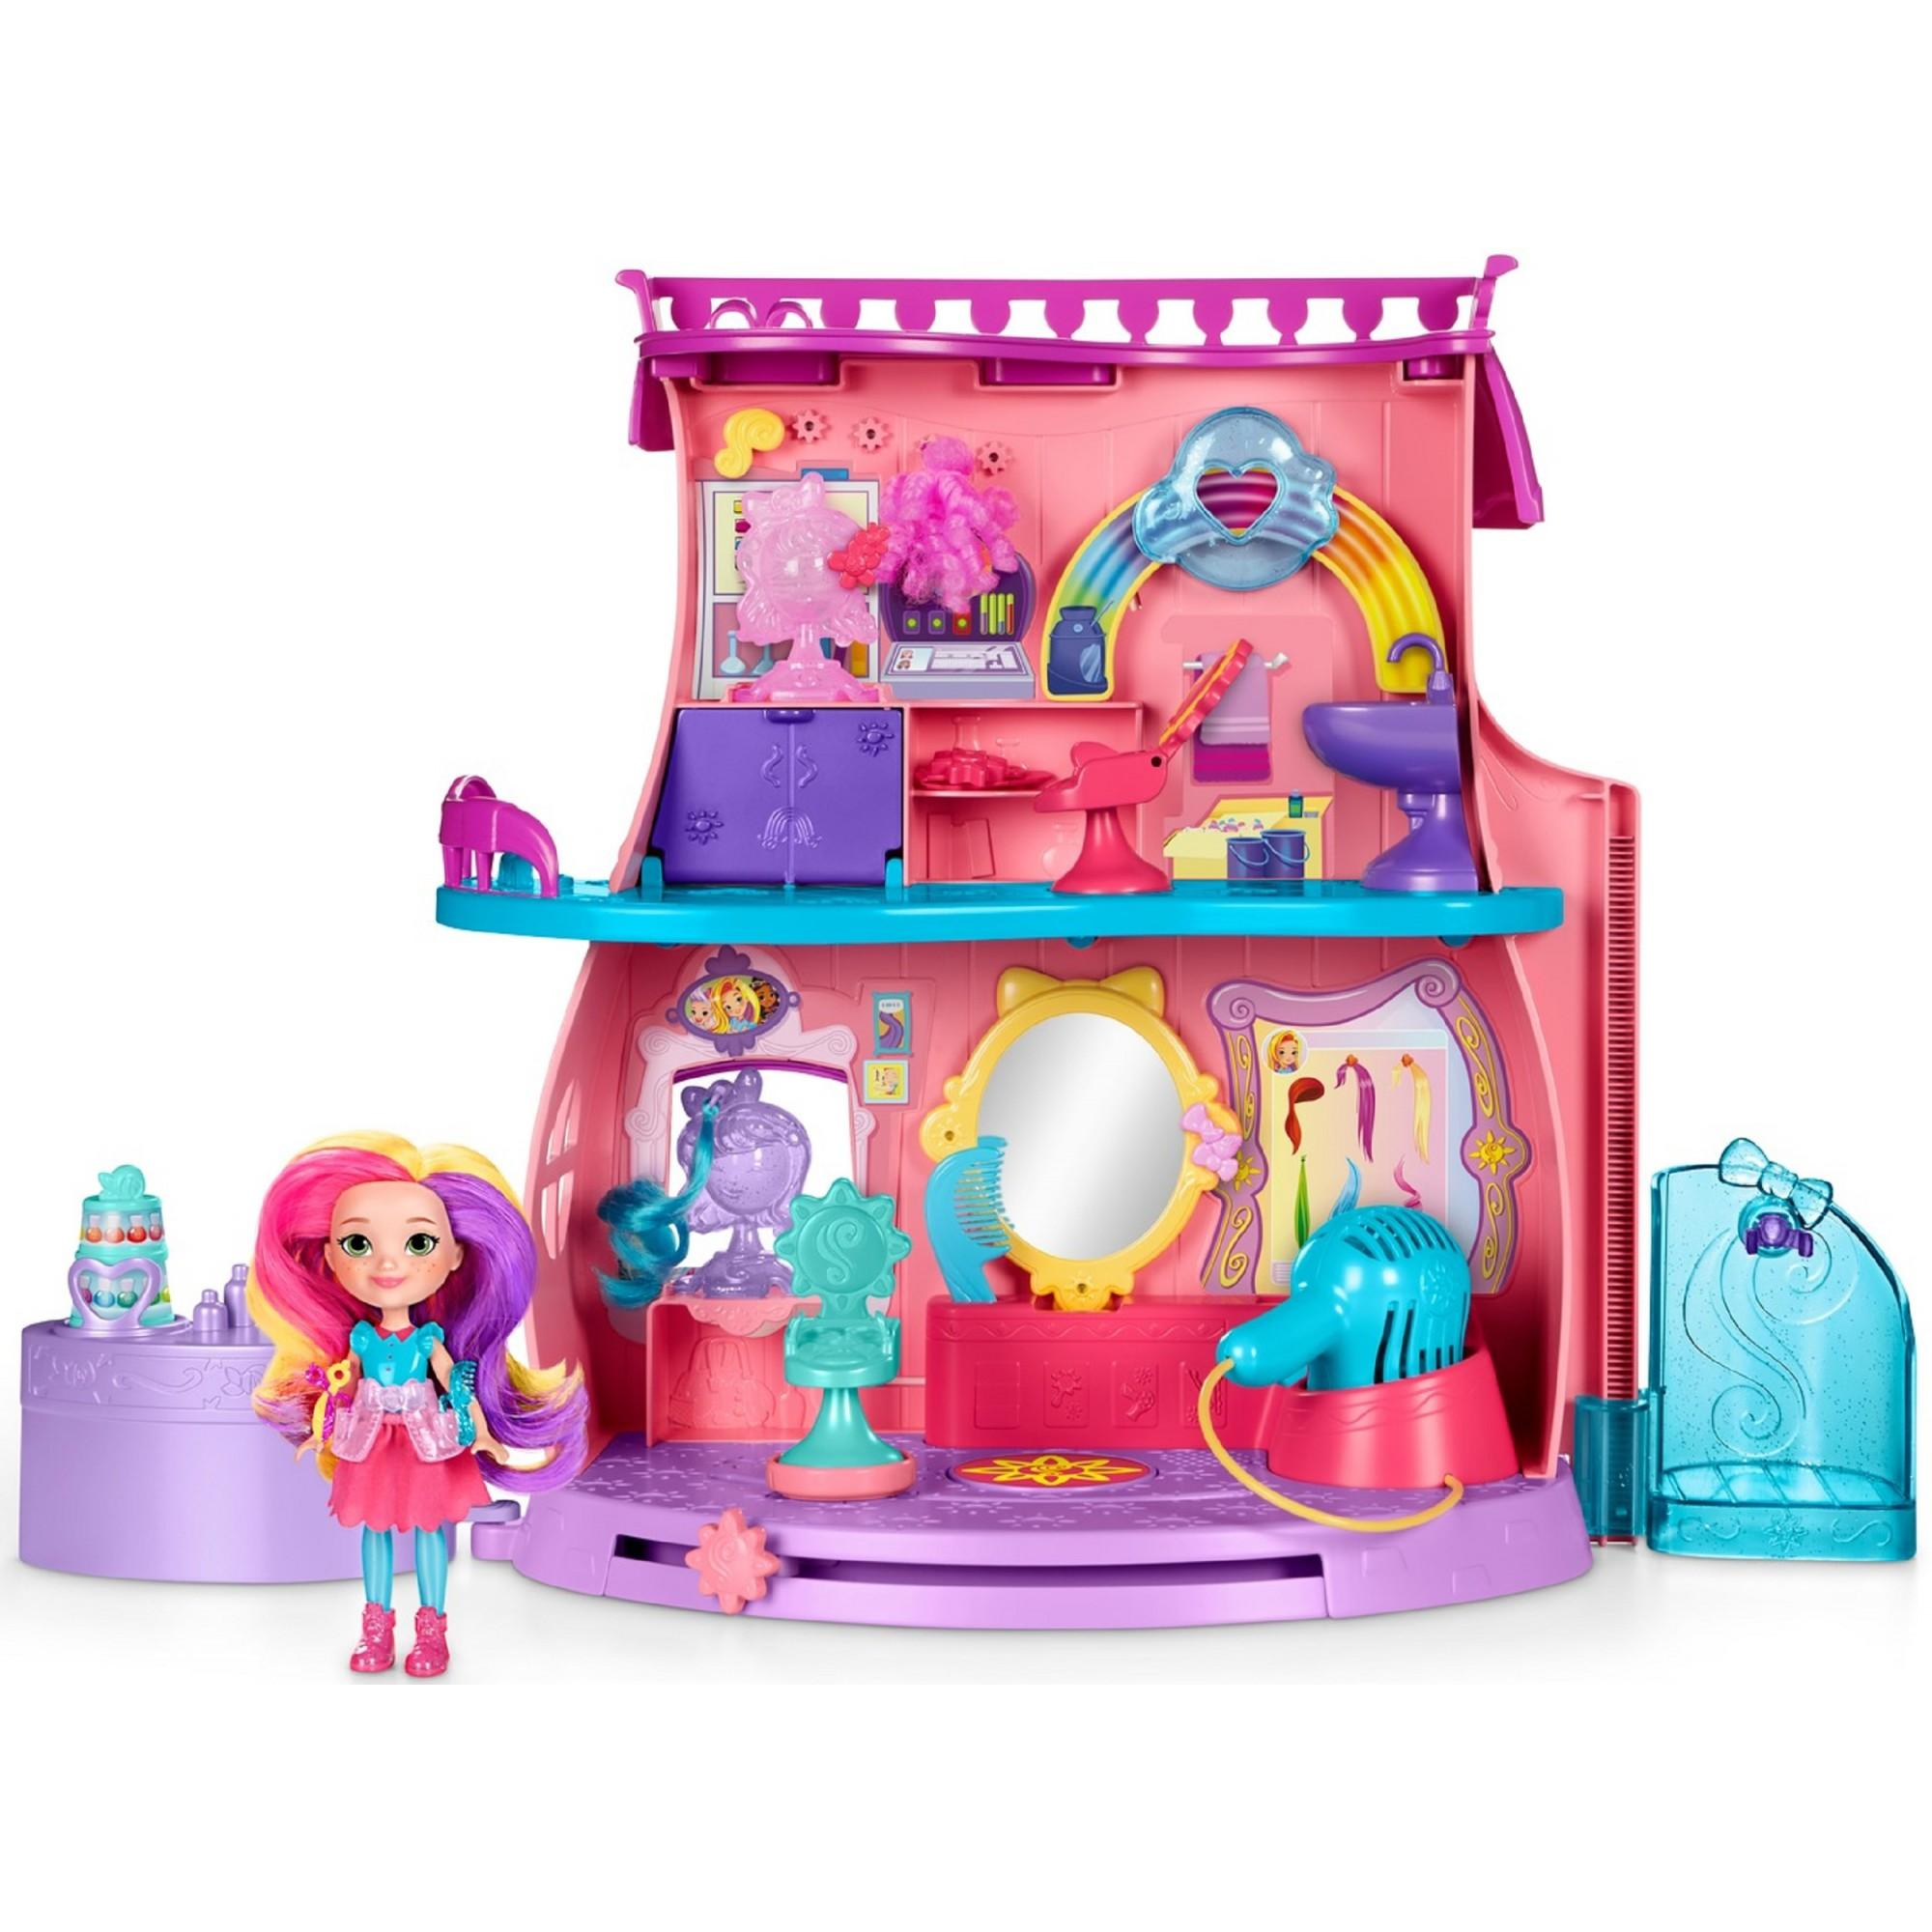 Nickelodeon Sunny Day's Fan-tastic Salon Playset Only $29.88